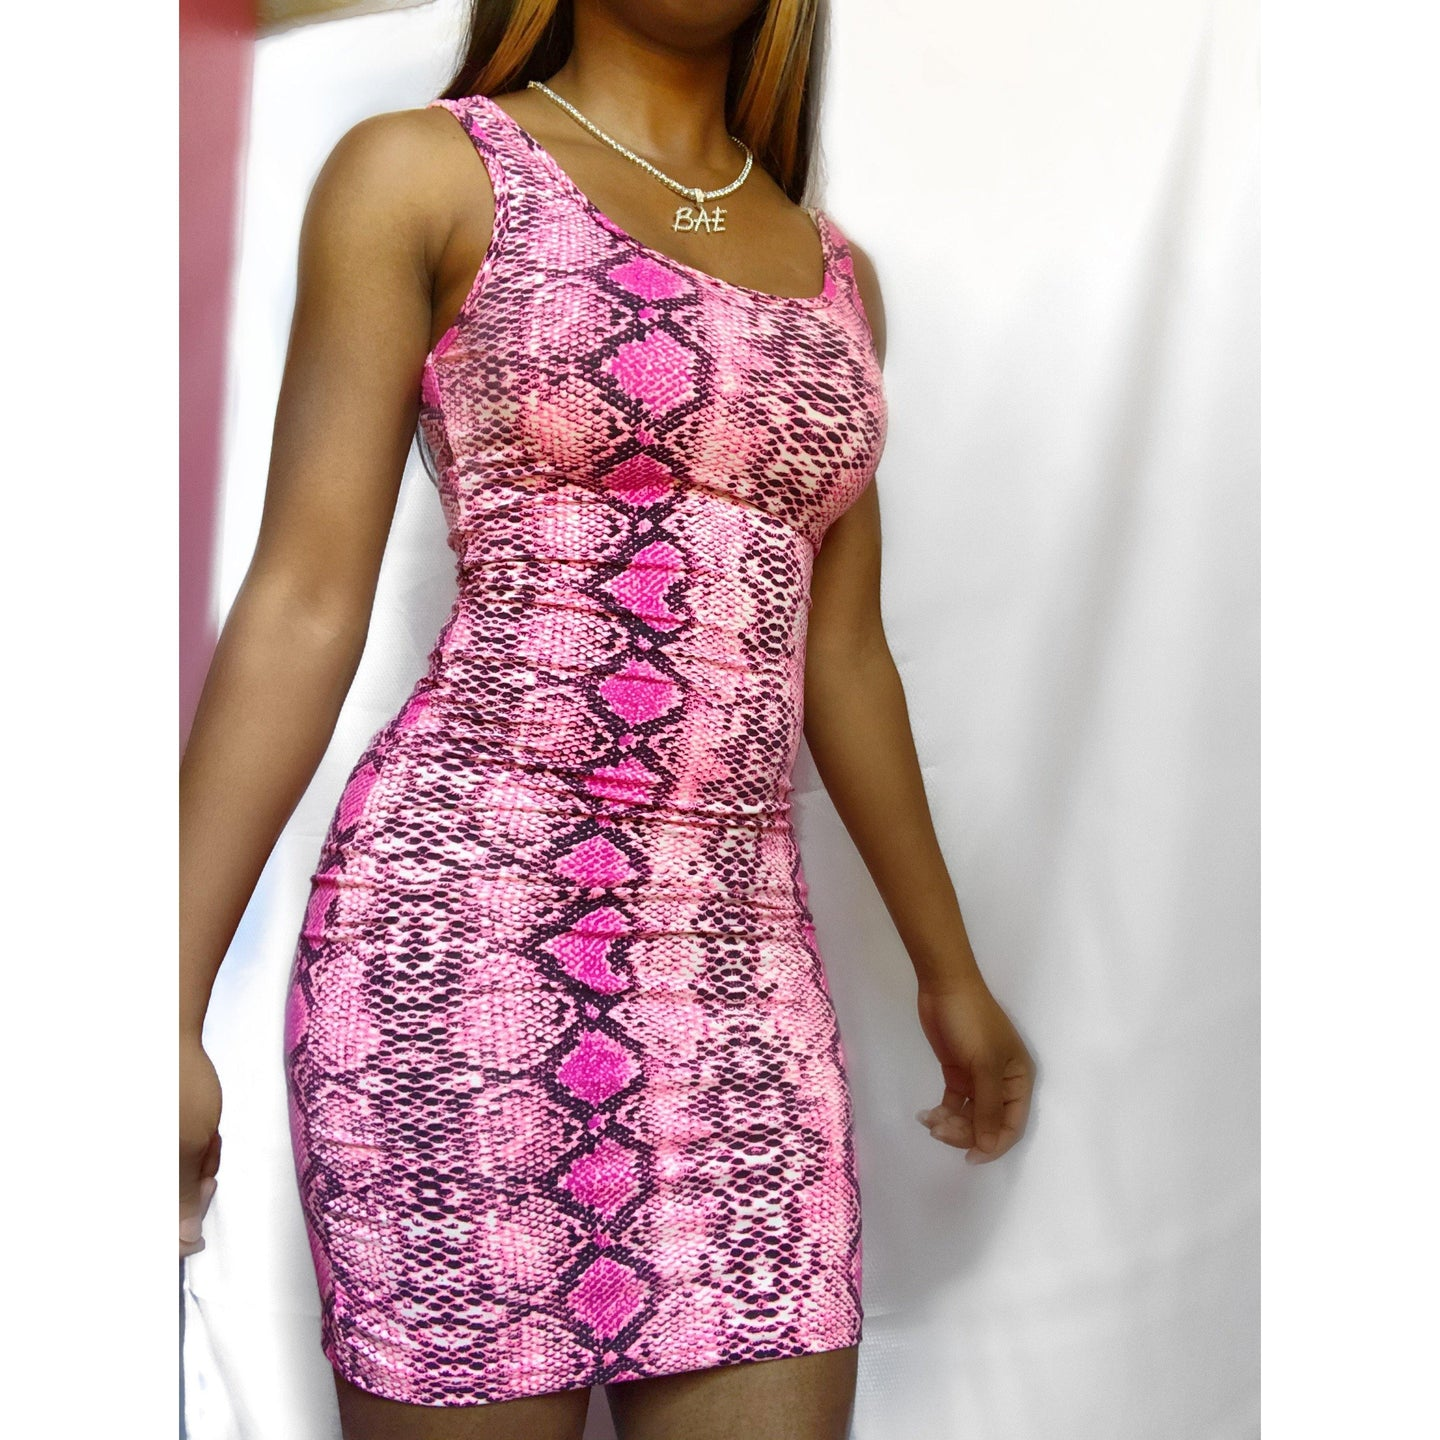 Barbiana Pink Snake Print Dress - Delirious Boutique